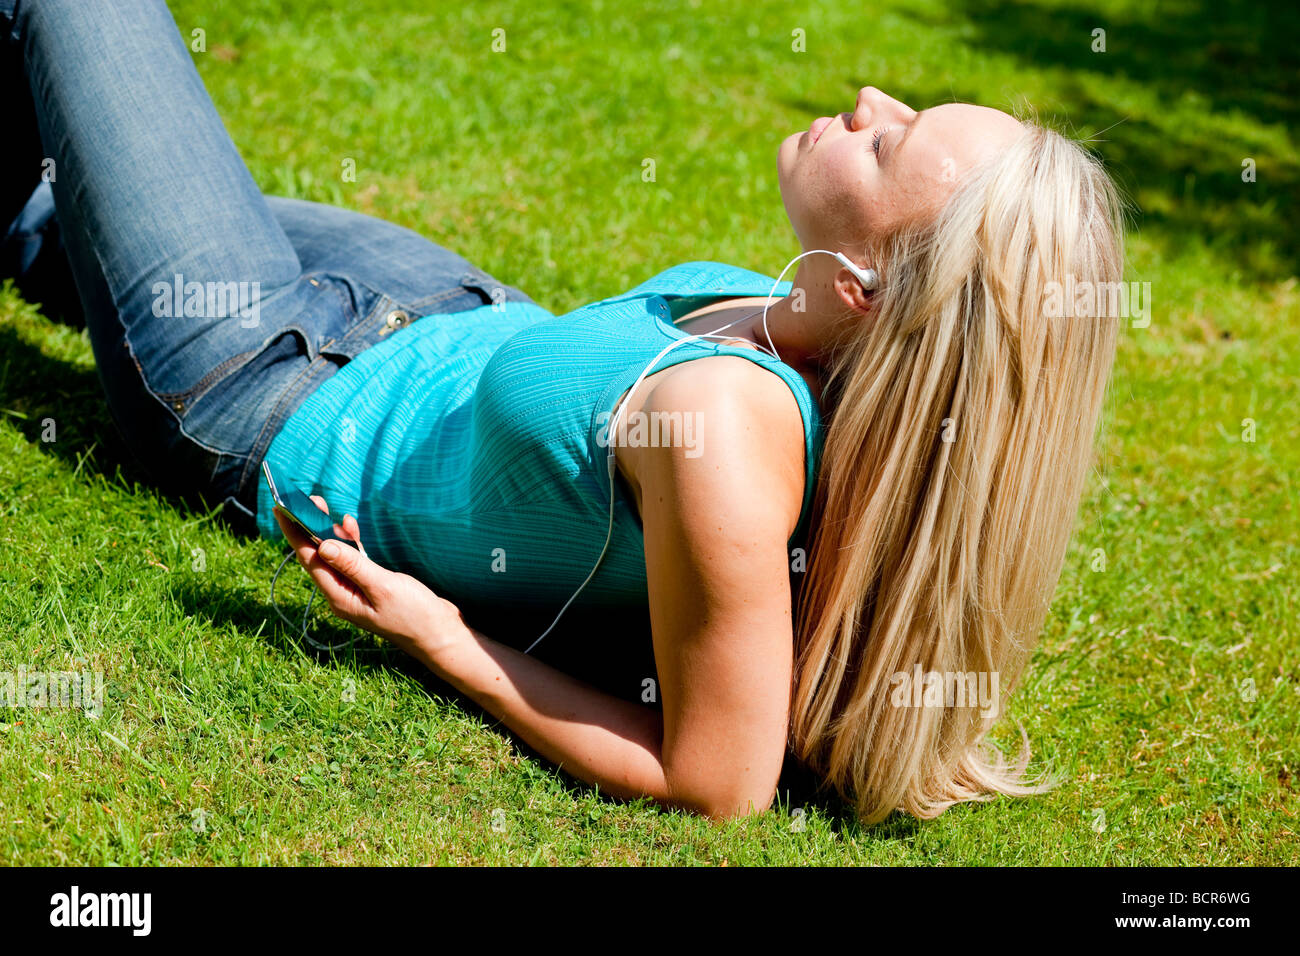 Girl lying on grass listening to mp3 player Photo Stock